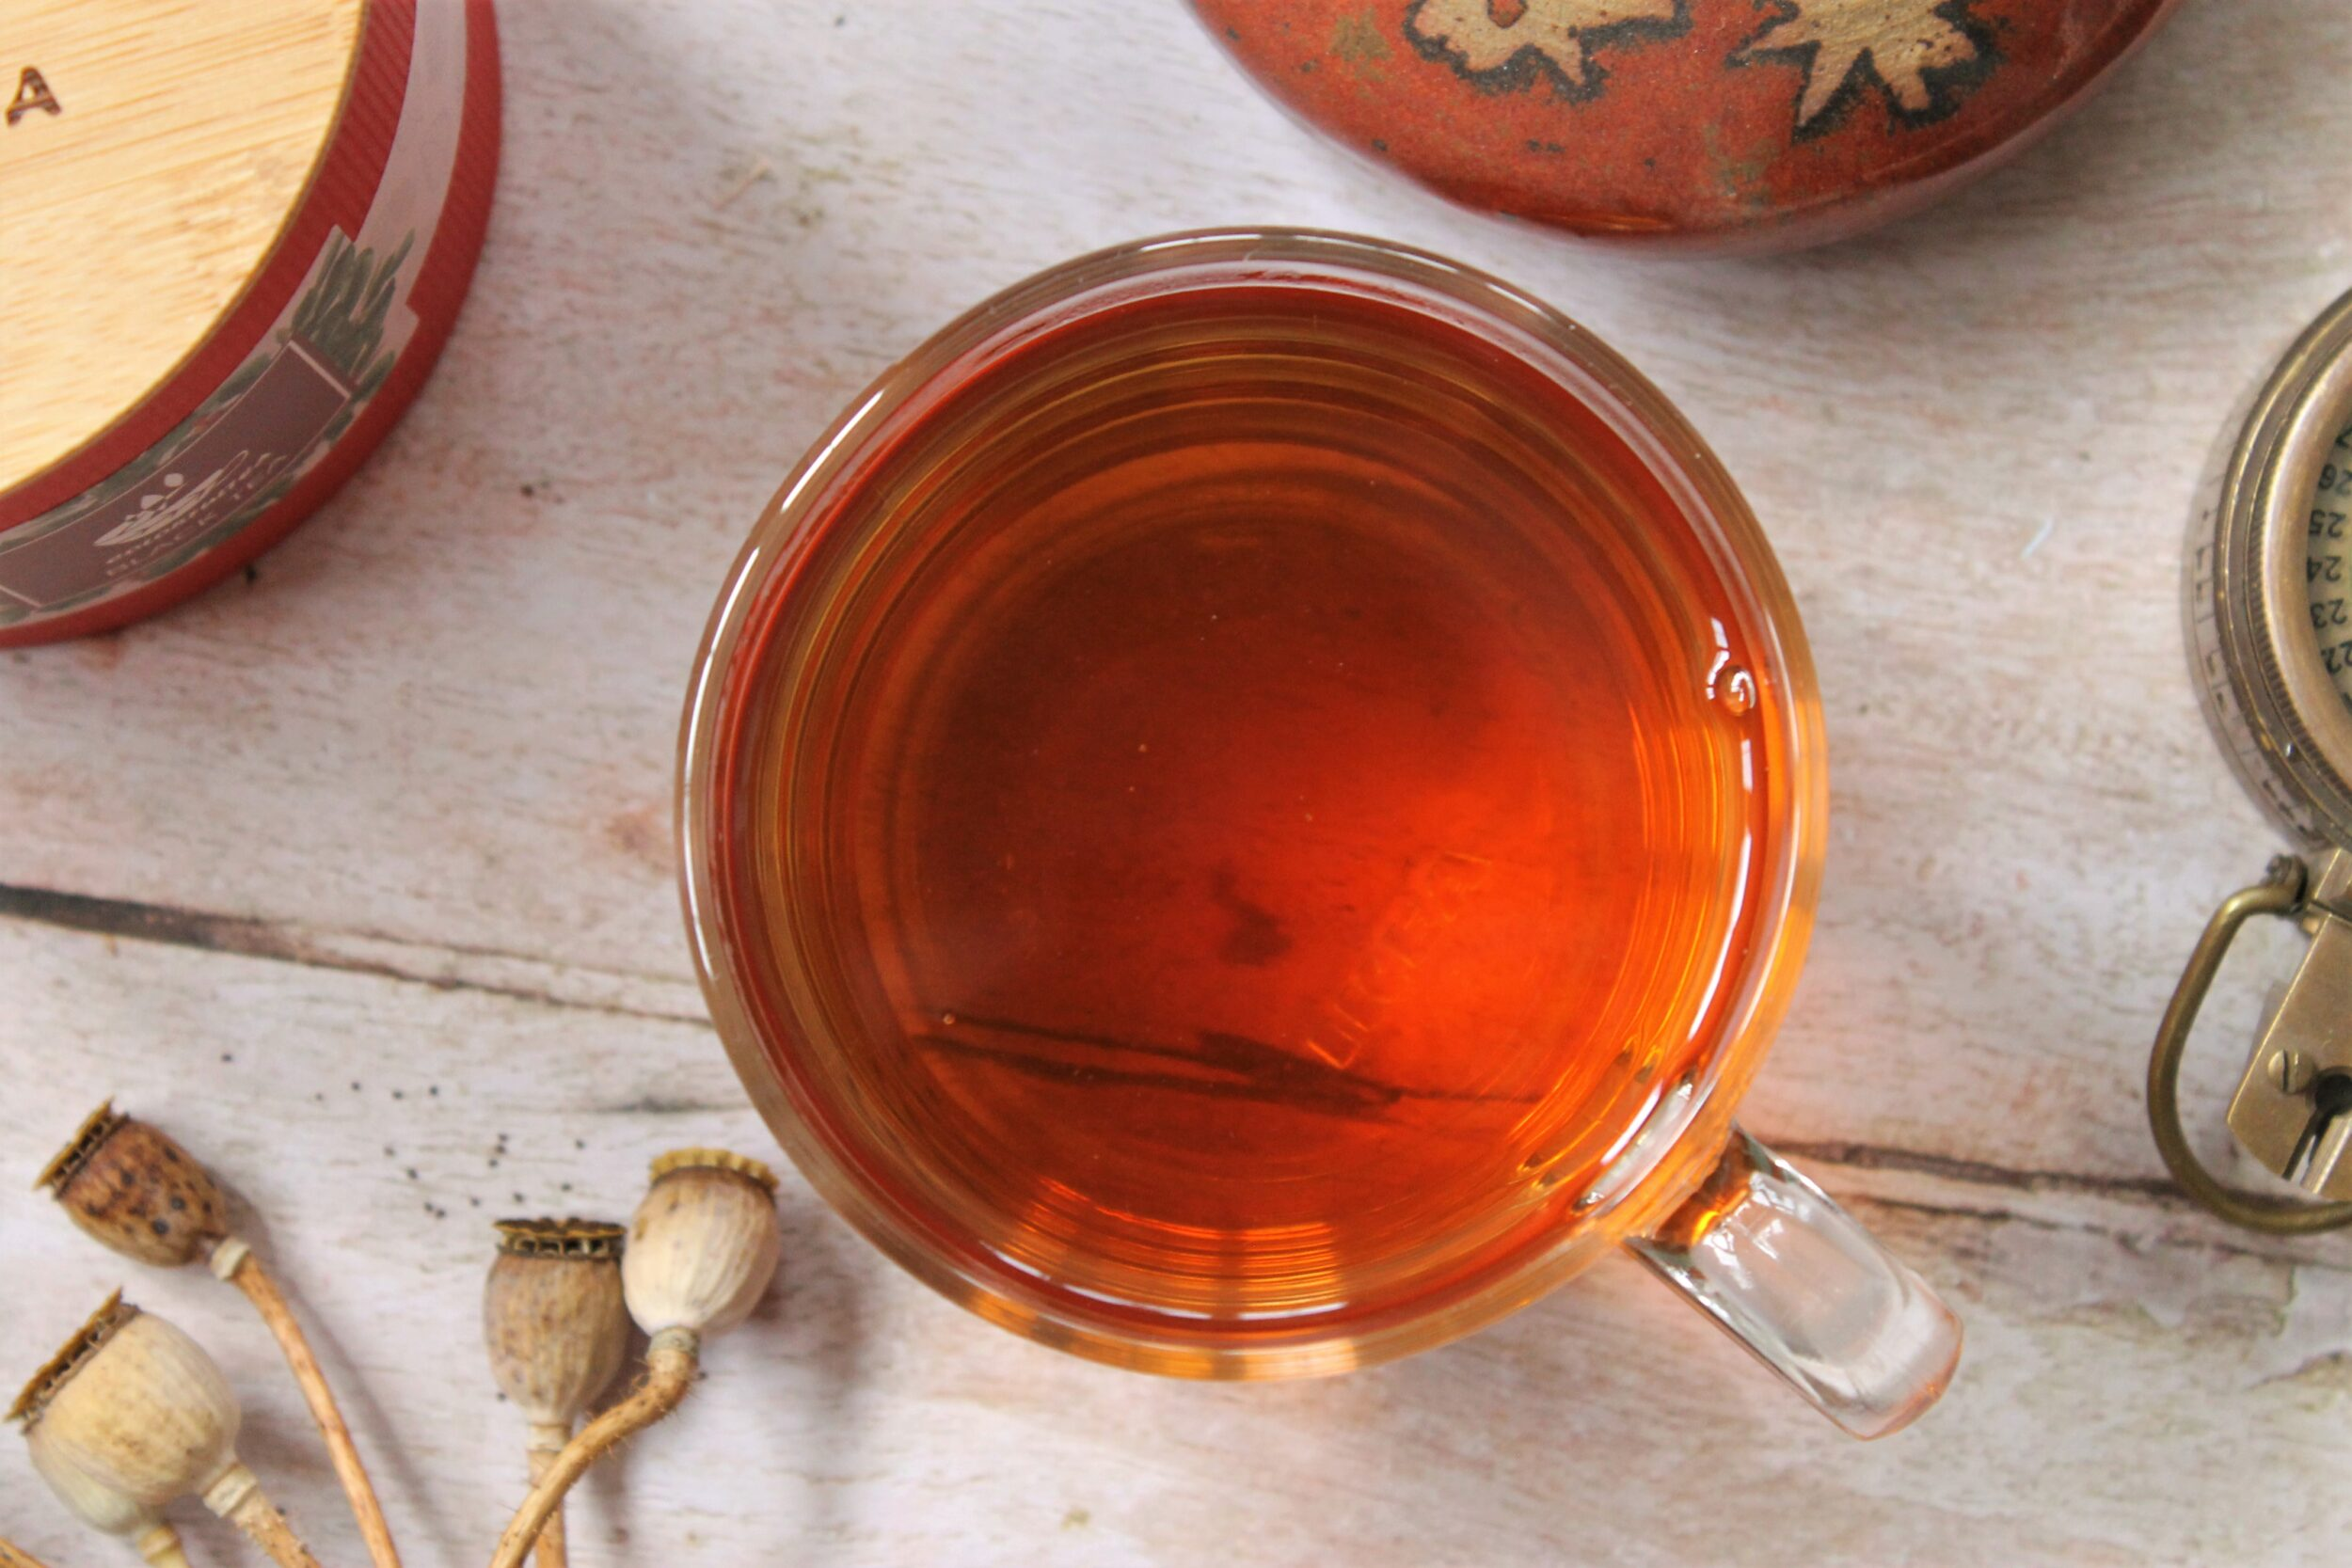 glass teacup with lapsang souchong smoked tea